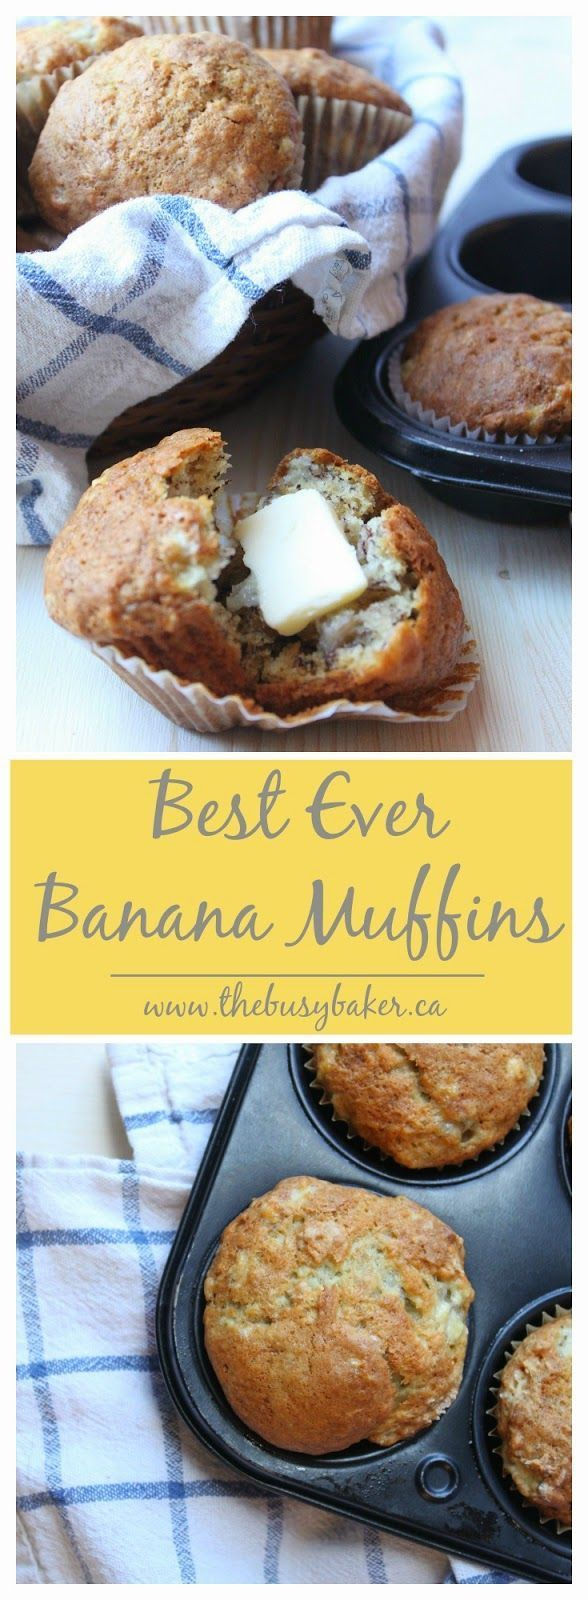 This is the best banana muffin recipe I have ever made! They're so simple to make!